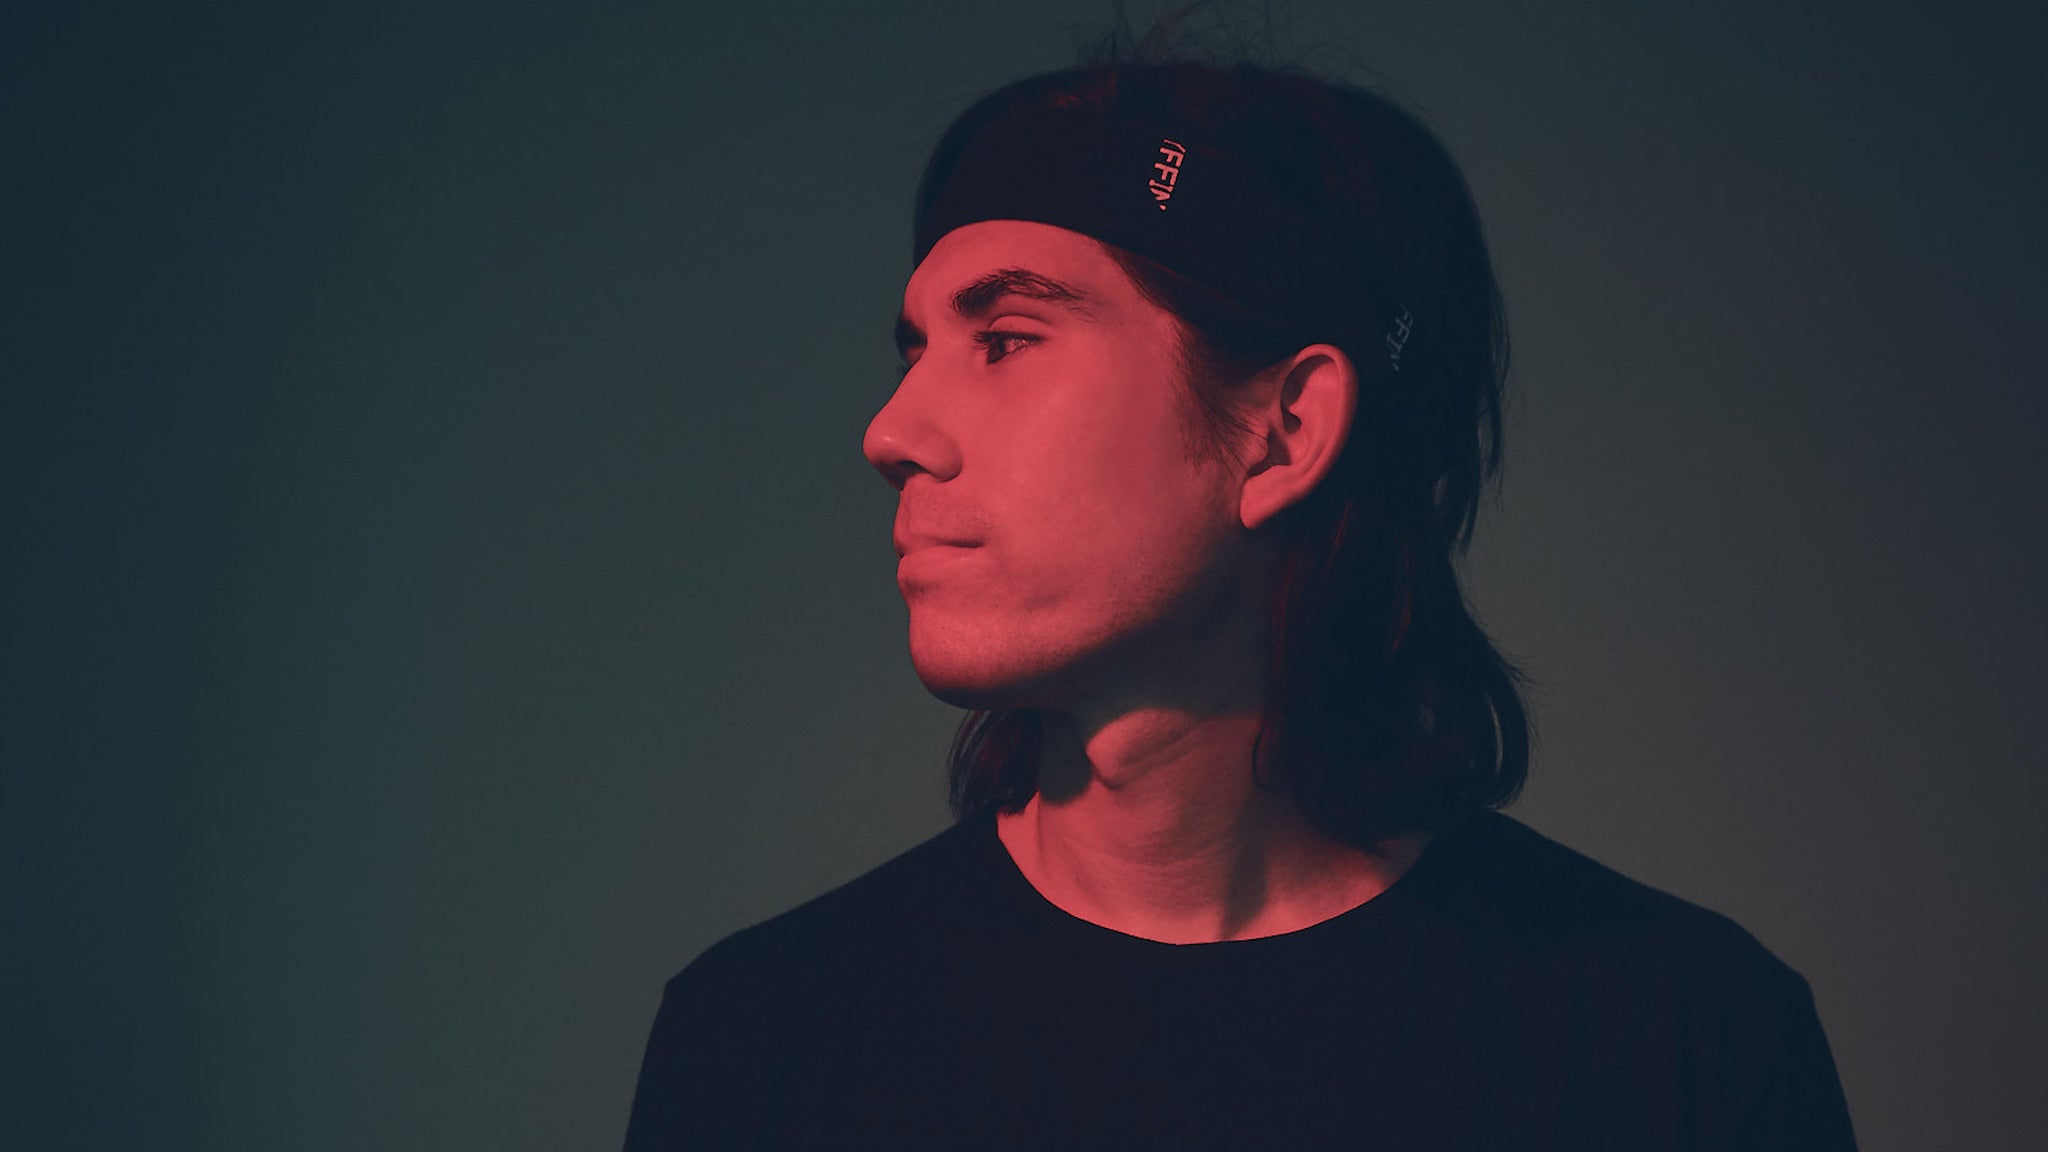 Gryffin at Royal Oak Music Theatre